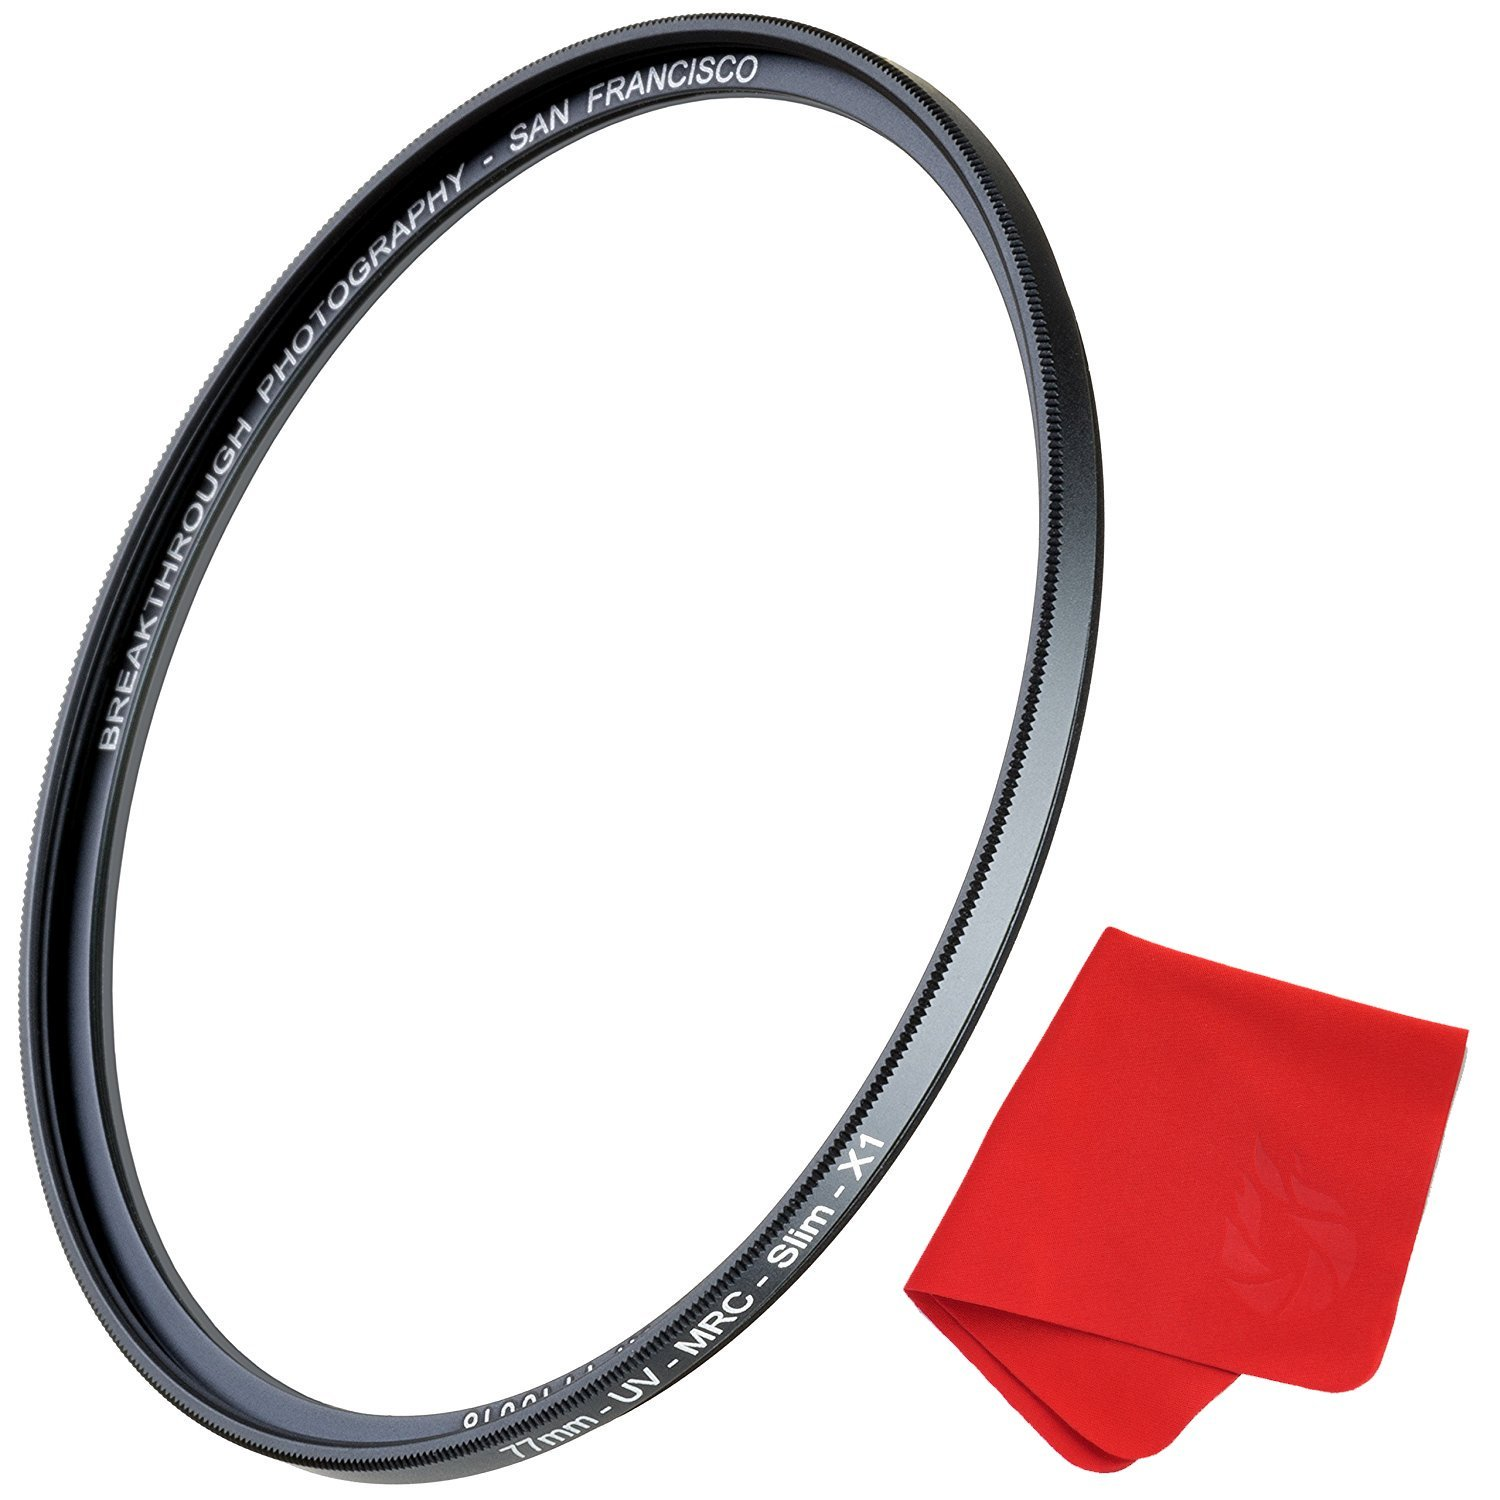 UV FILTER FOR 50mm LENS